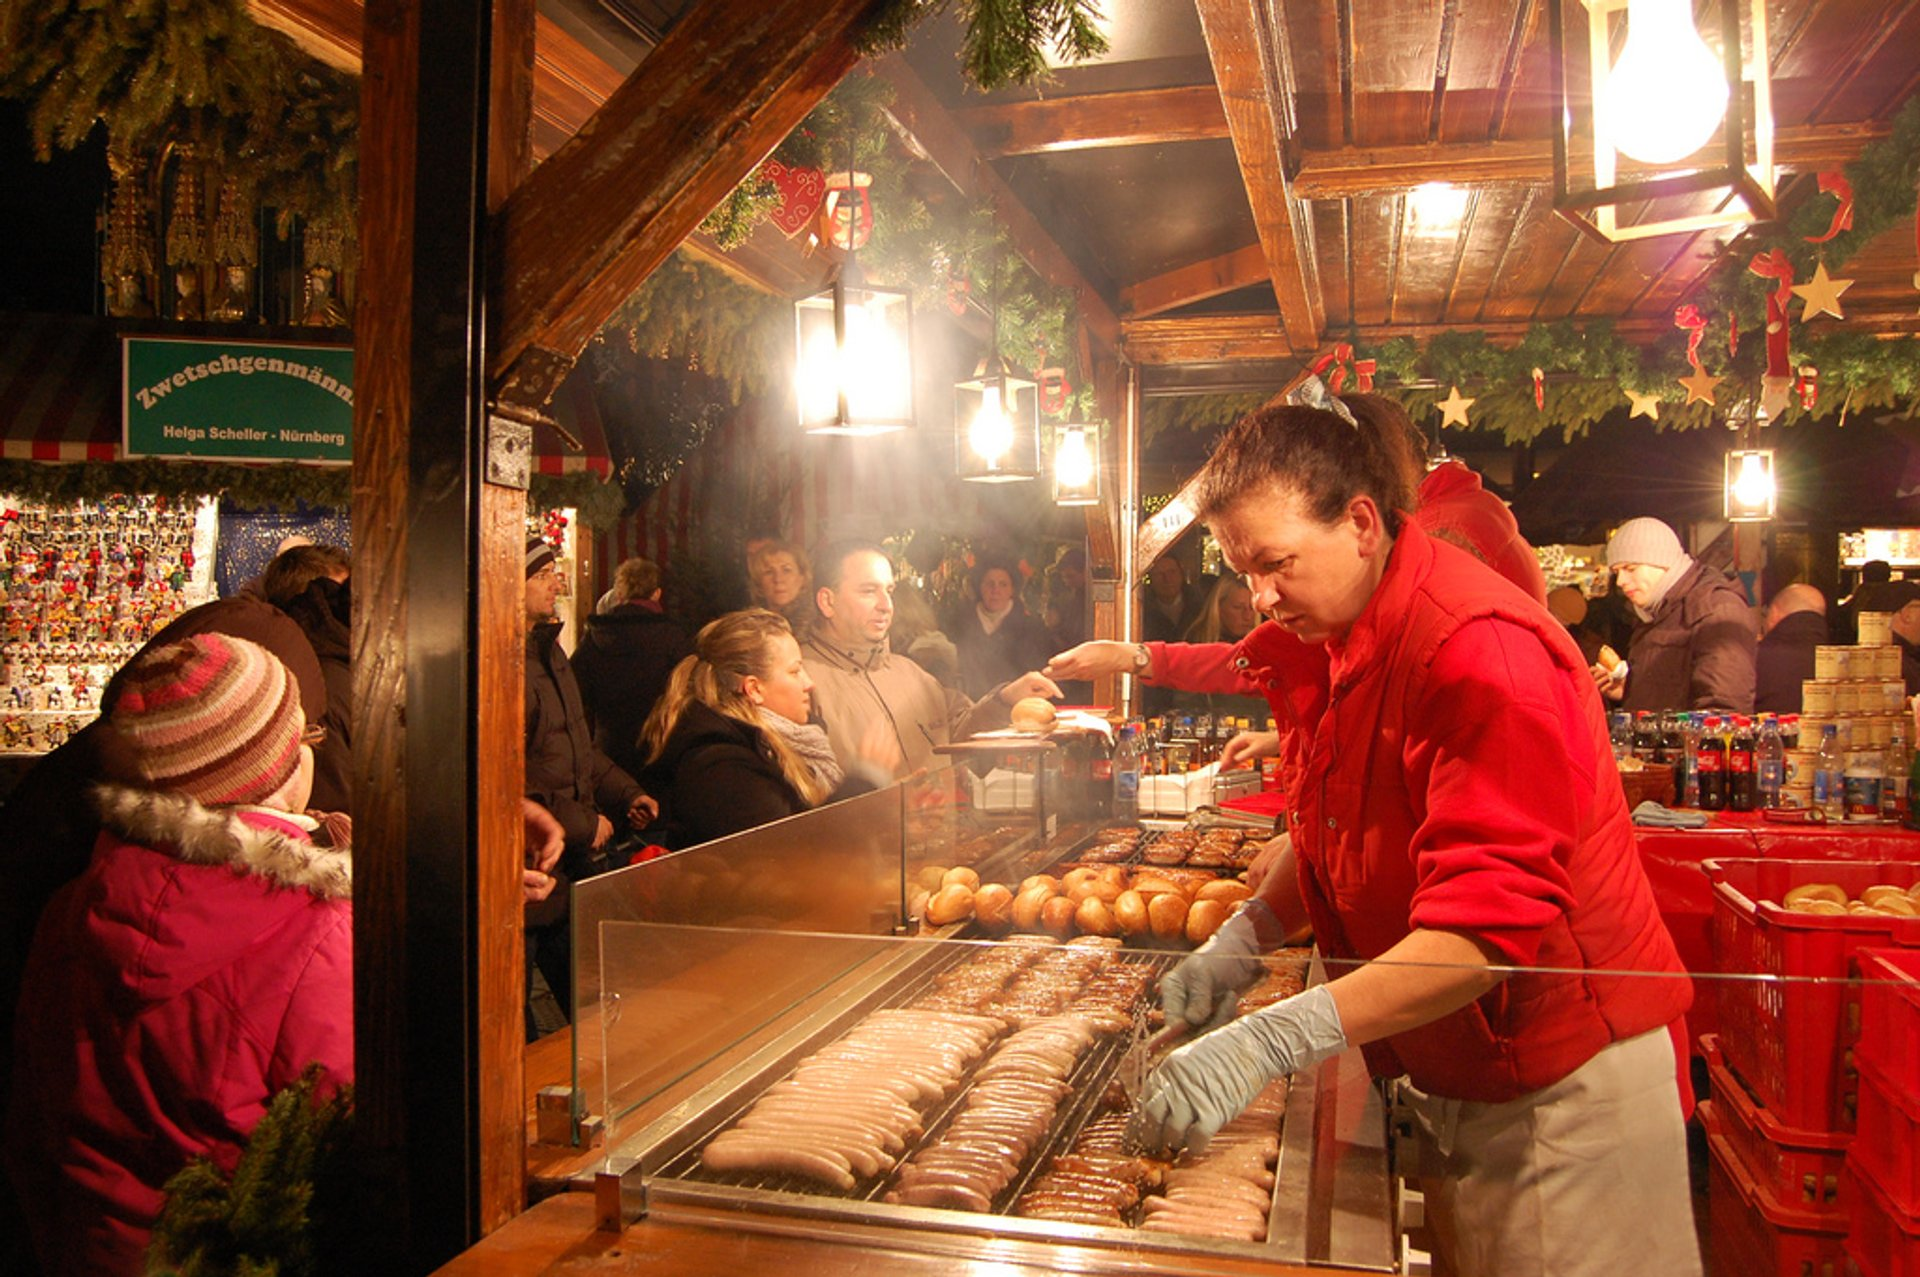 Nürnberger Rostbratwurst stall at the Christmas market 2020